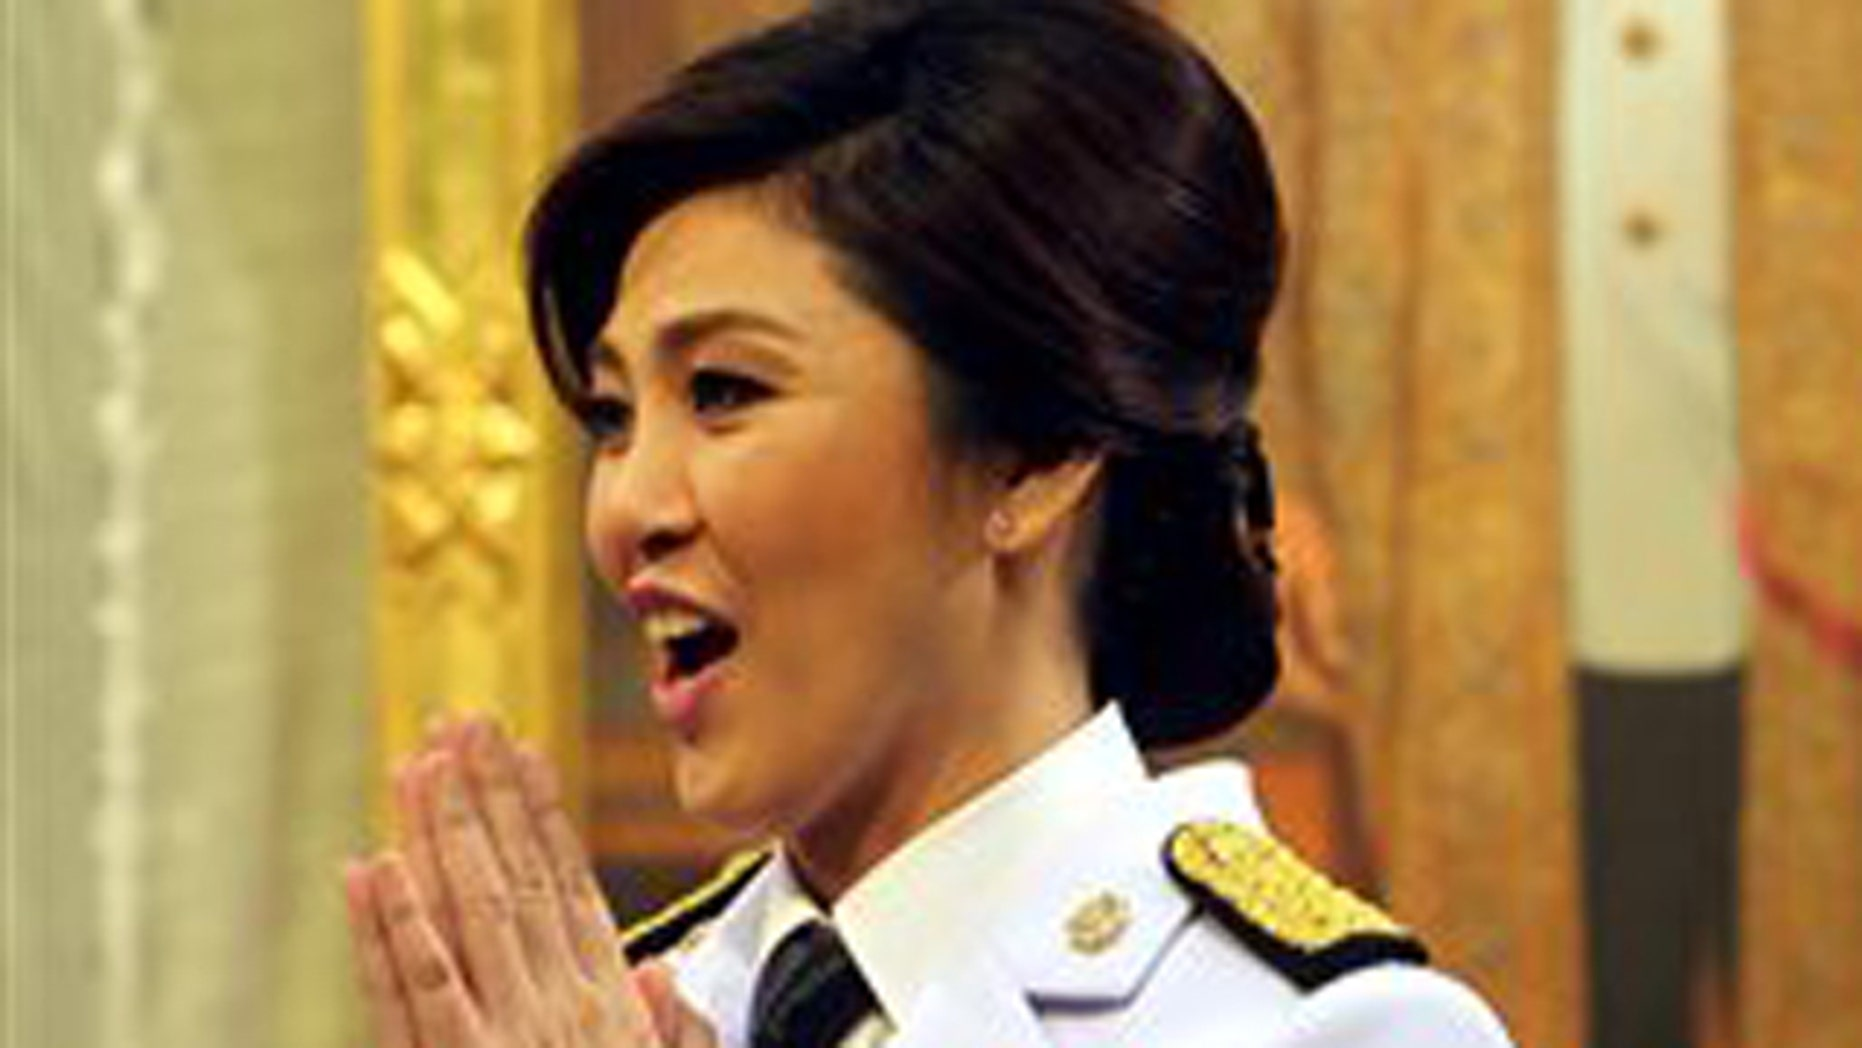 Thai Prime Minister Yingluck Shinawatra greets after receiving the royal command appointed her as the country's prime minister in front of a portrait of King Bhumibol Adulyadej at her Pheu Thai party headquarters in Bangkok, Thailand, Monday, Aug. 8 2011. Yingluck, 44, U.S.-educated businesswoman, became the country's first female prime minister. (AP Photo/Rungroj Yongrit, Pool)